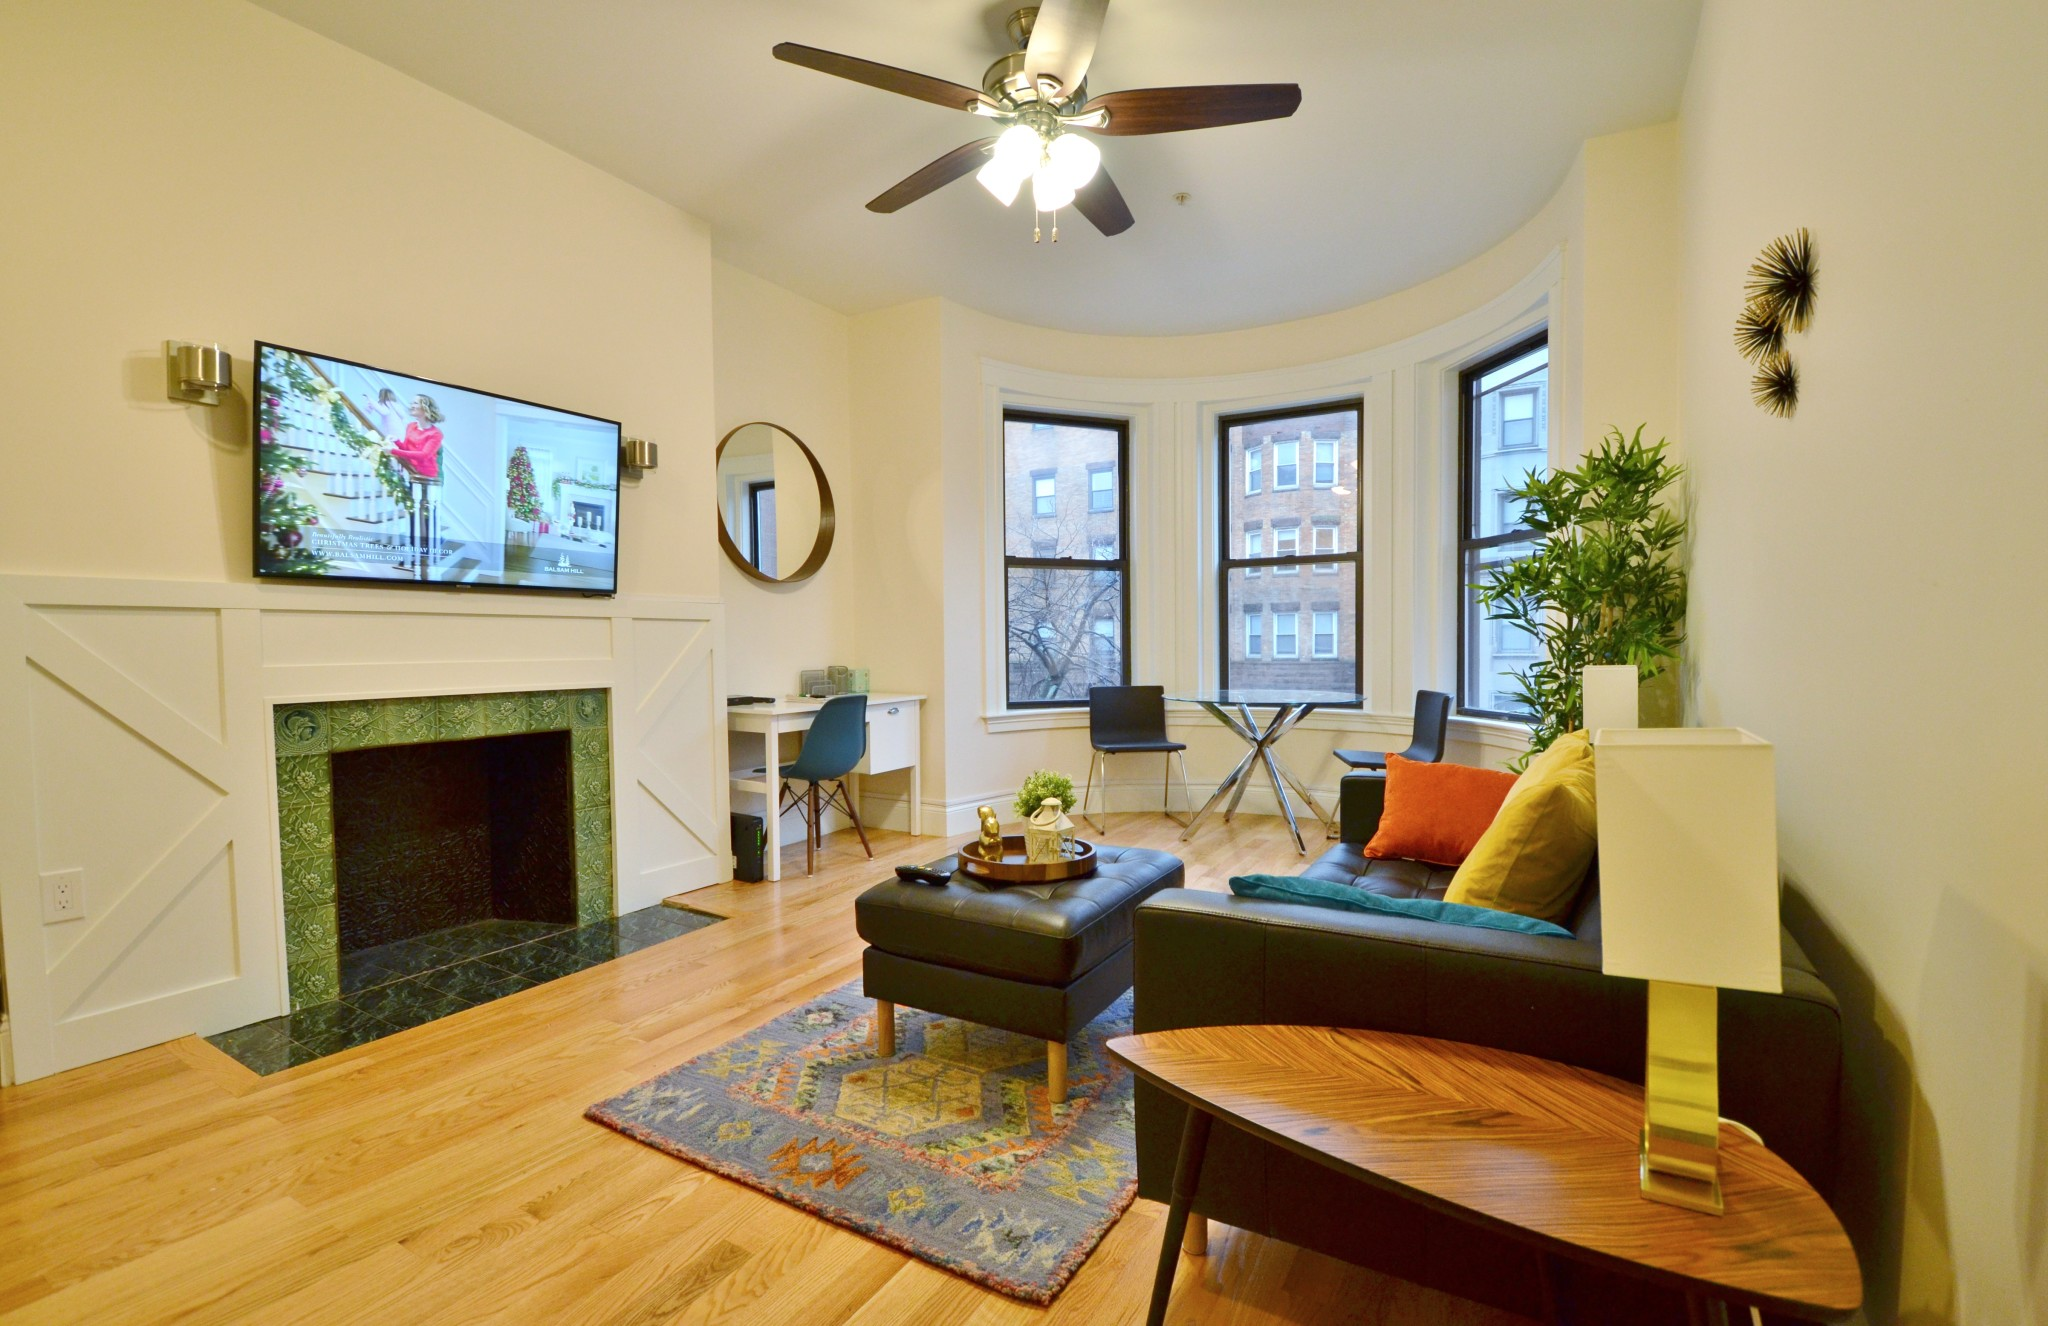 1 Bed, 1 Bath apartment in Boston, Fenway for $2,950